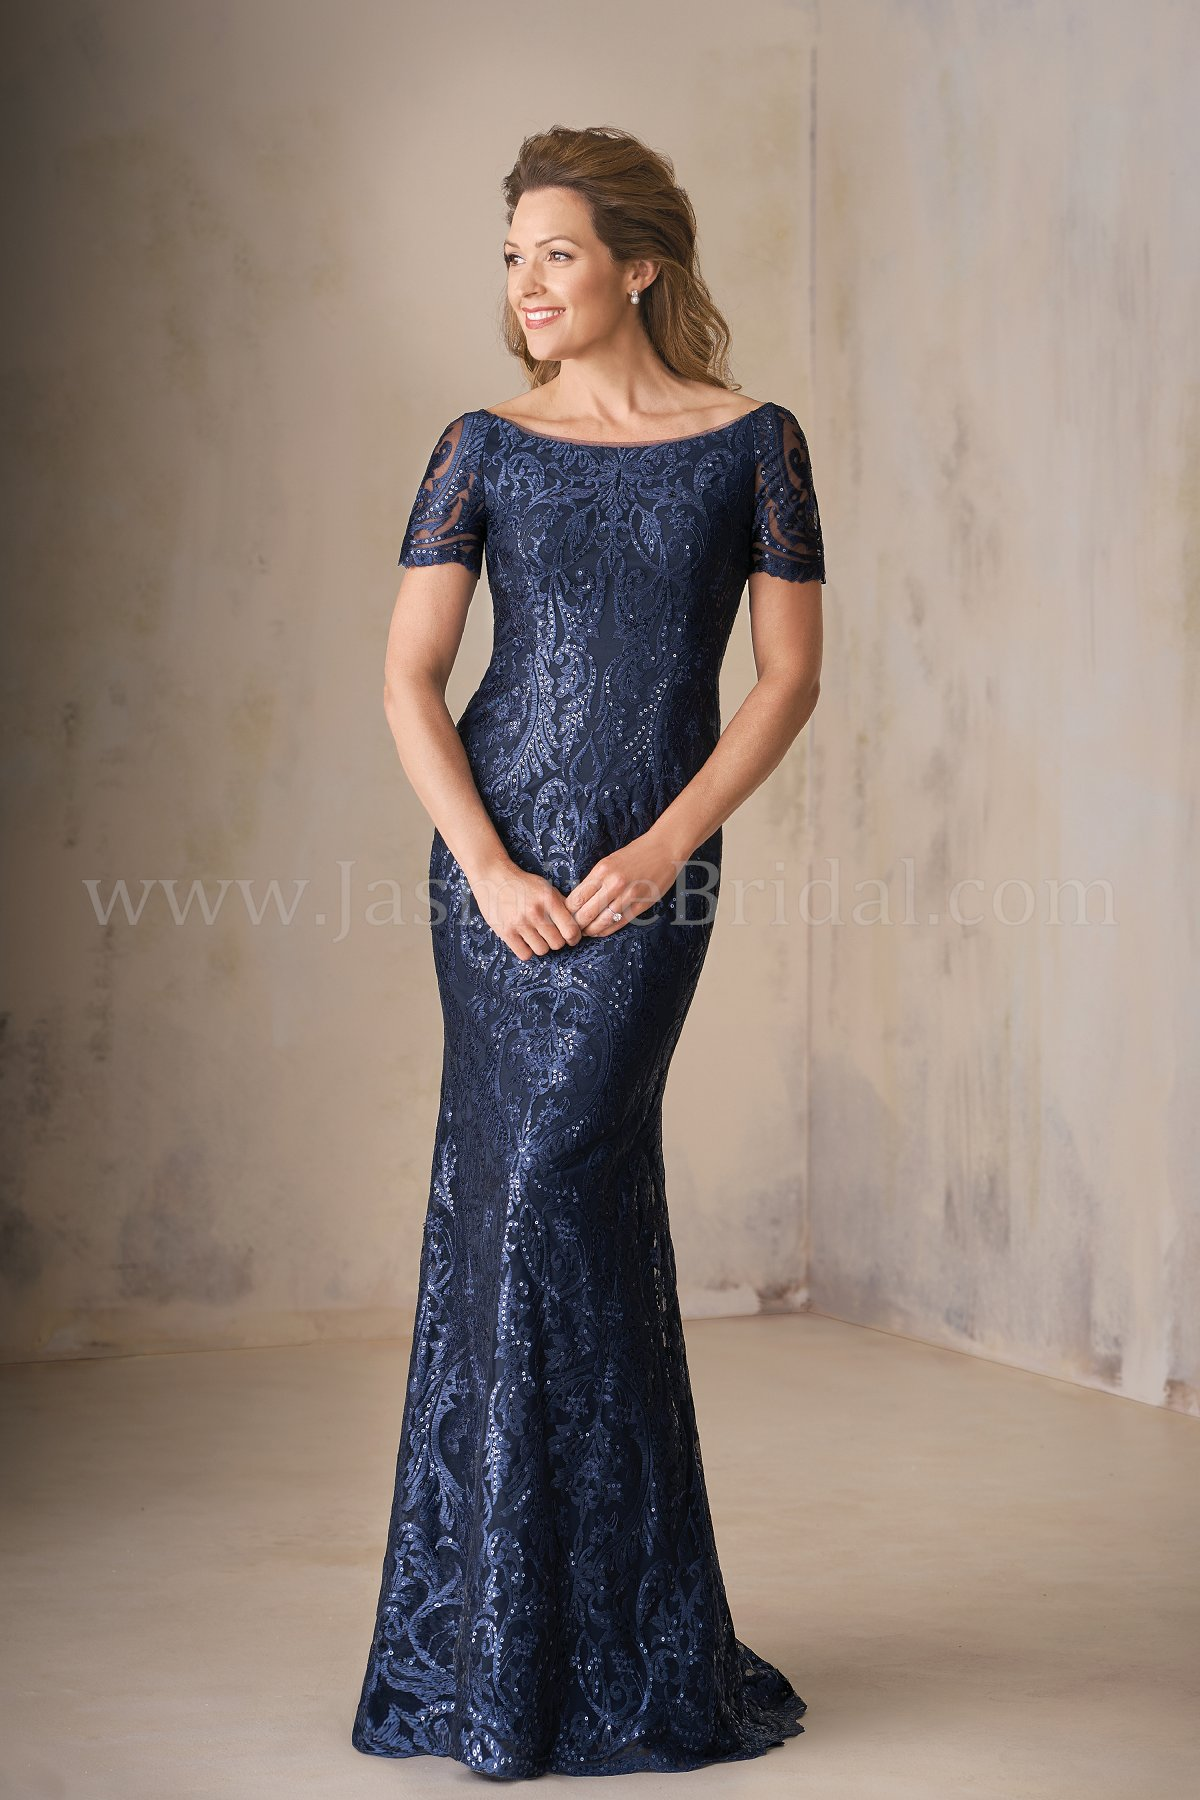 K208009 Long Portrait Neckline Embroidery Lace Mob Dress With Short Sleeves